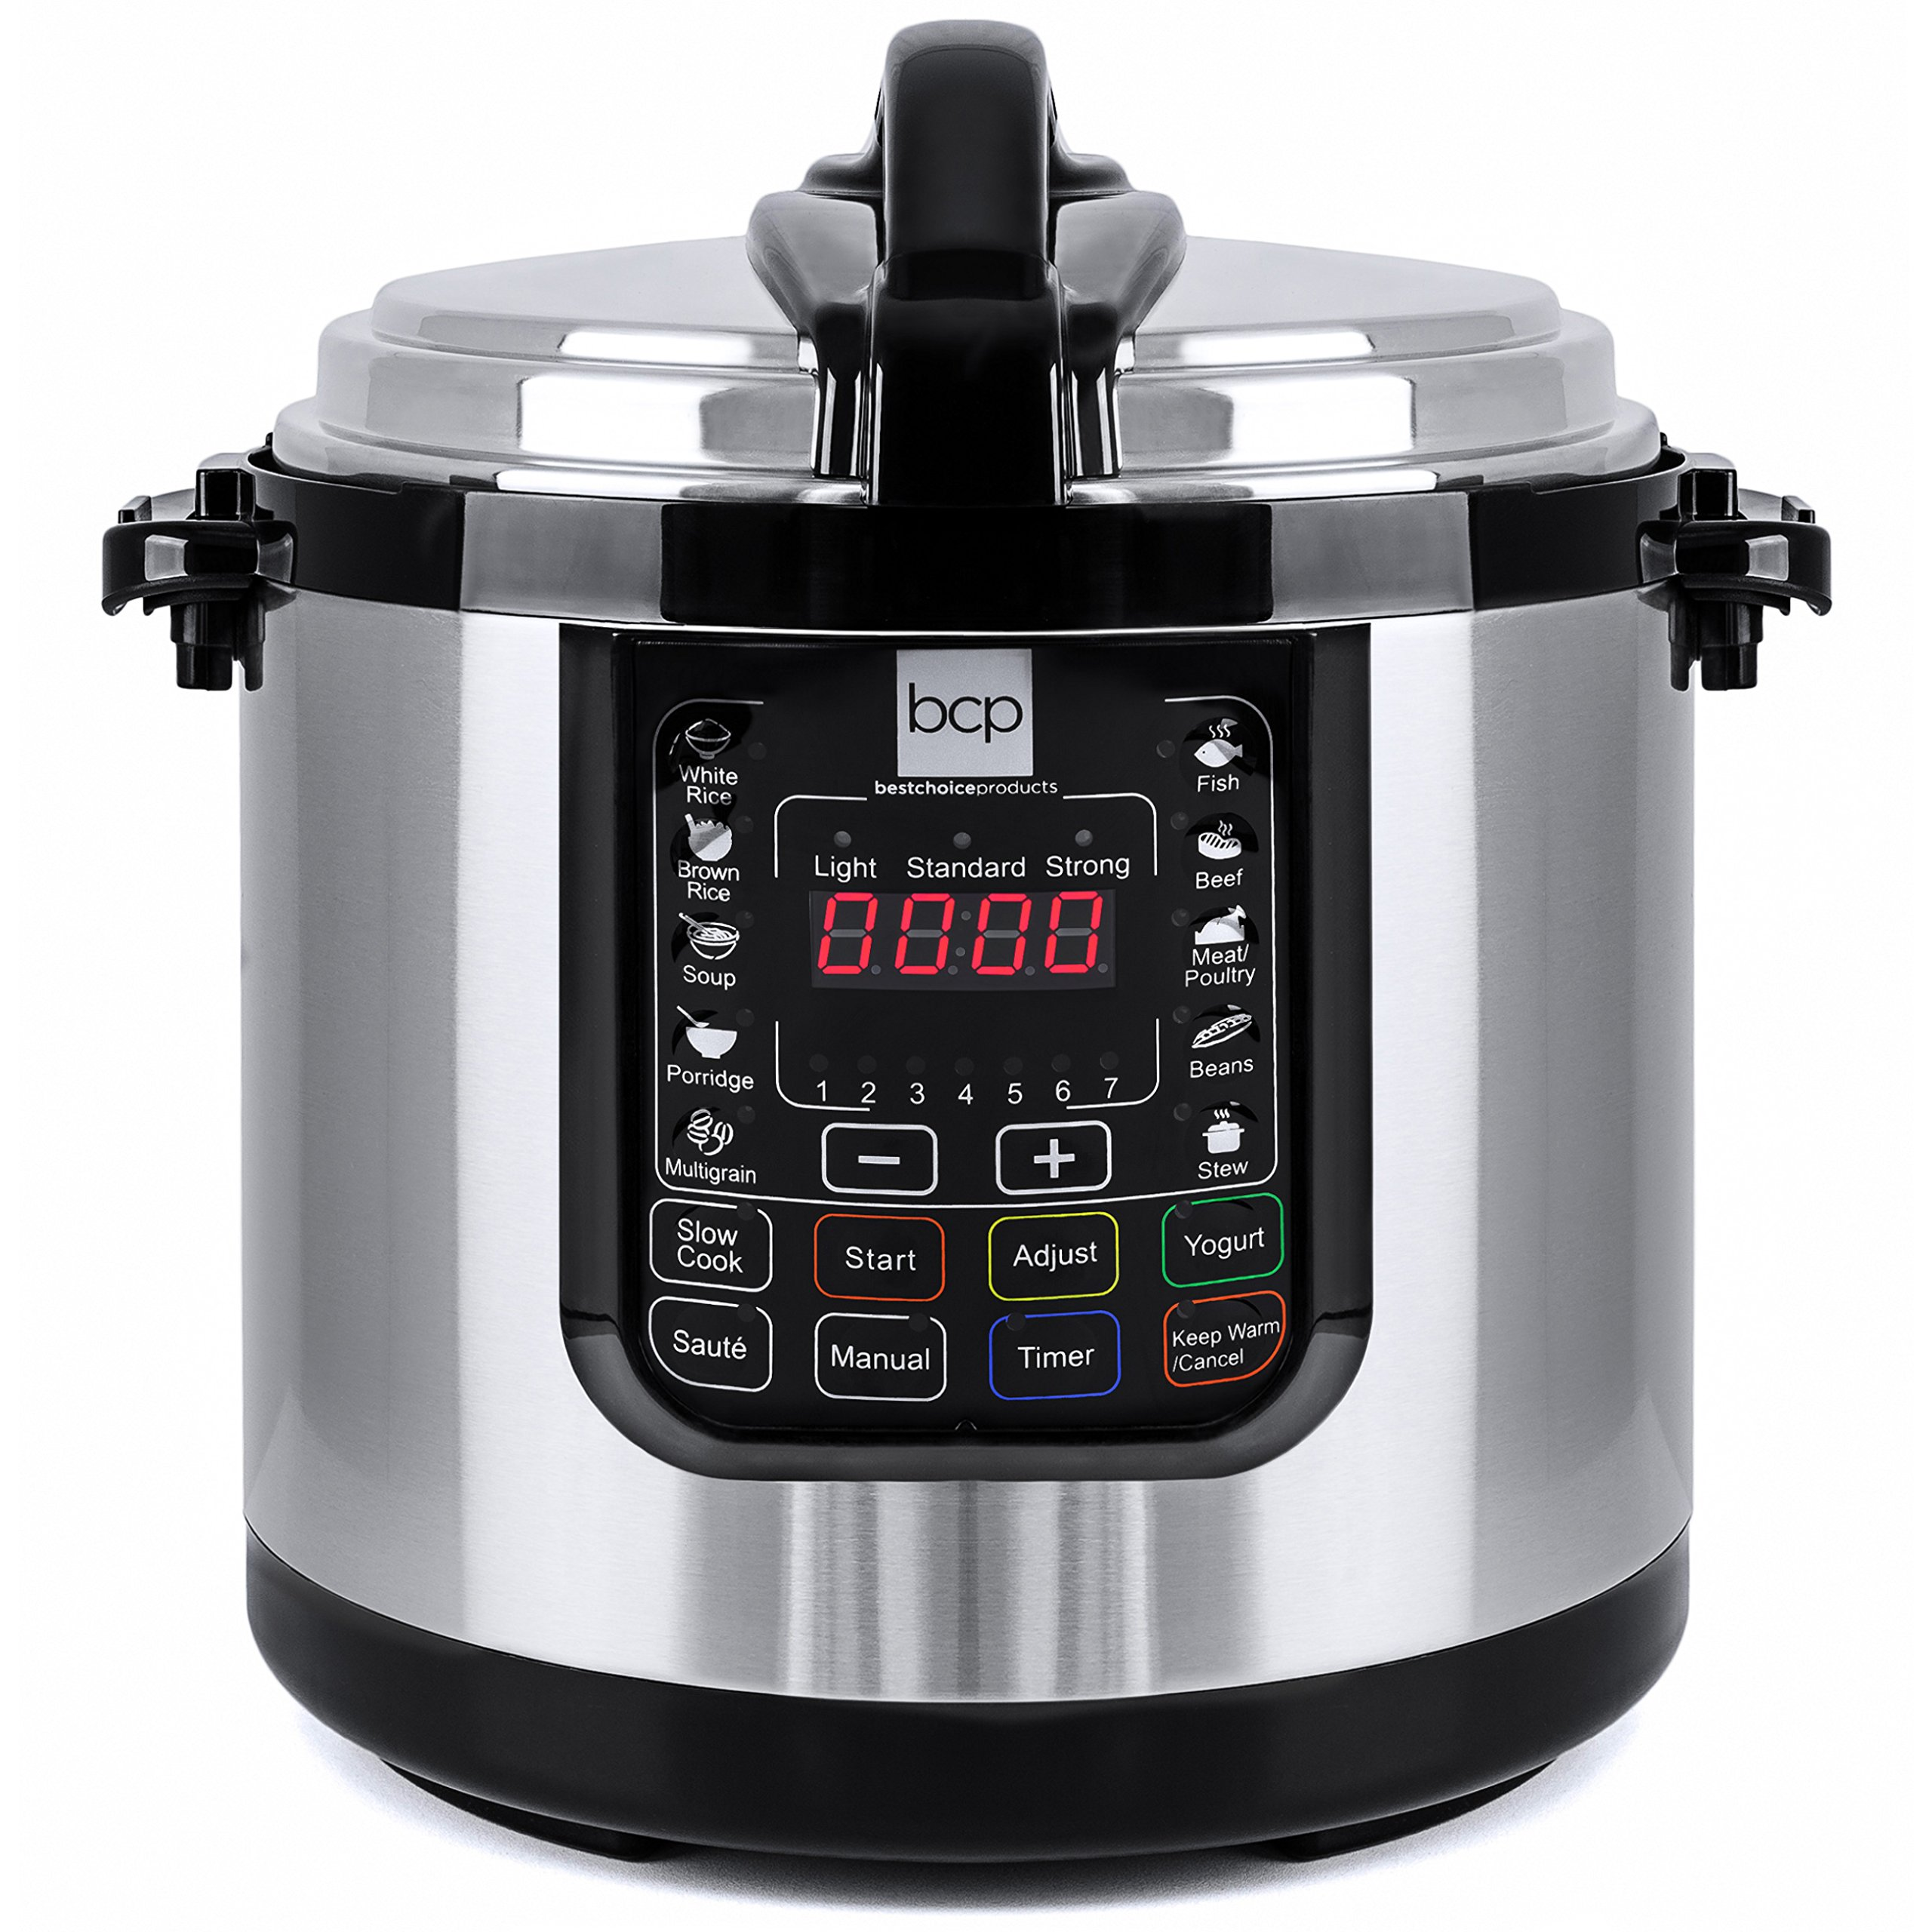 Best Choice Products 6L 1000W Multifunctional Stainless Steel Non-Stick Electric Pressure Cooker w/LED Display Screen, 10 Settings, 3 Modes - Silver